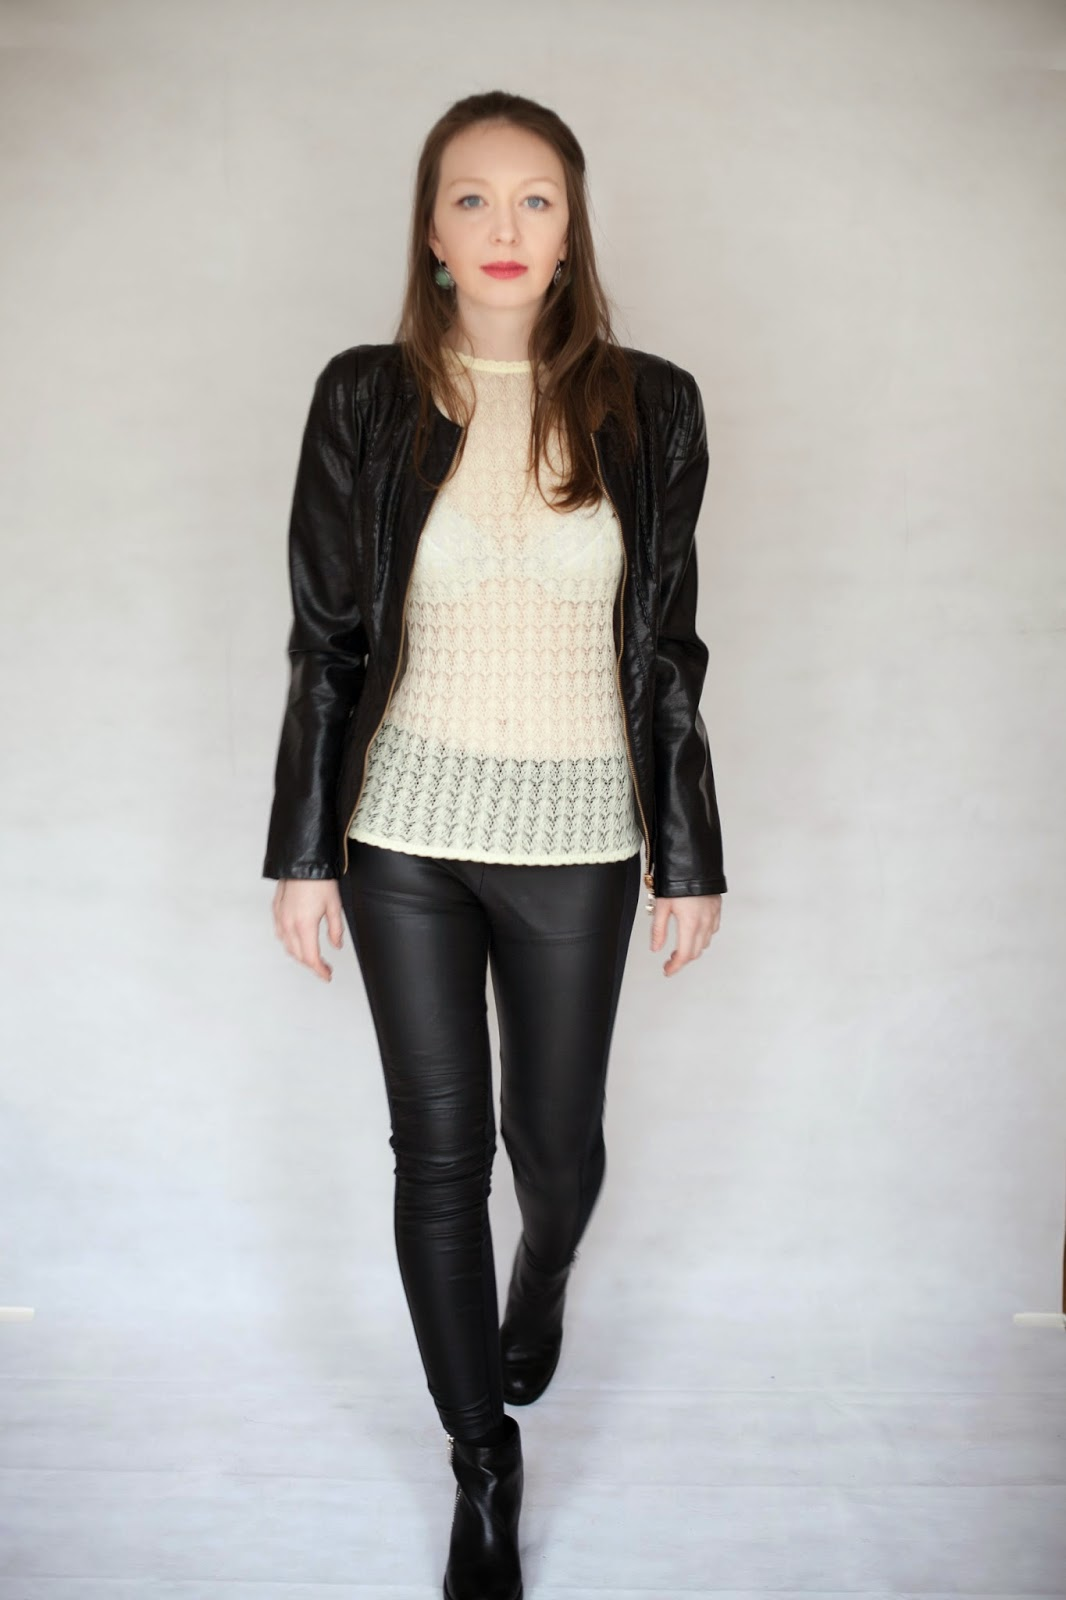 Just in Style Hot in leather two outfit of the day